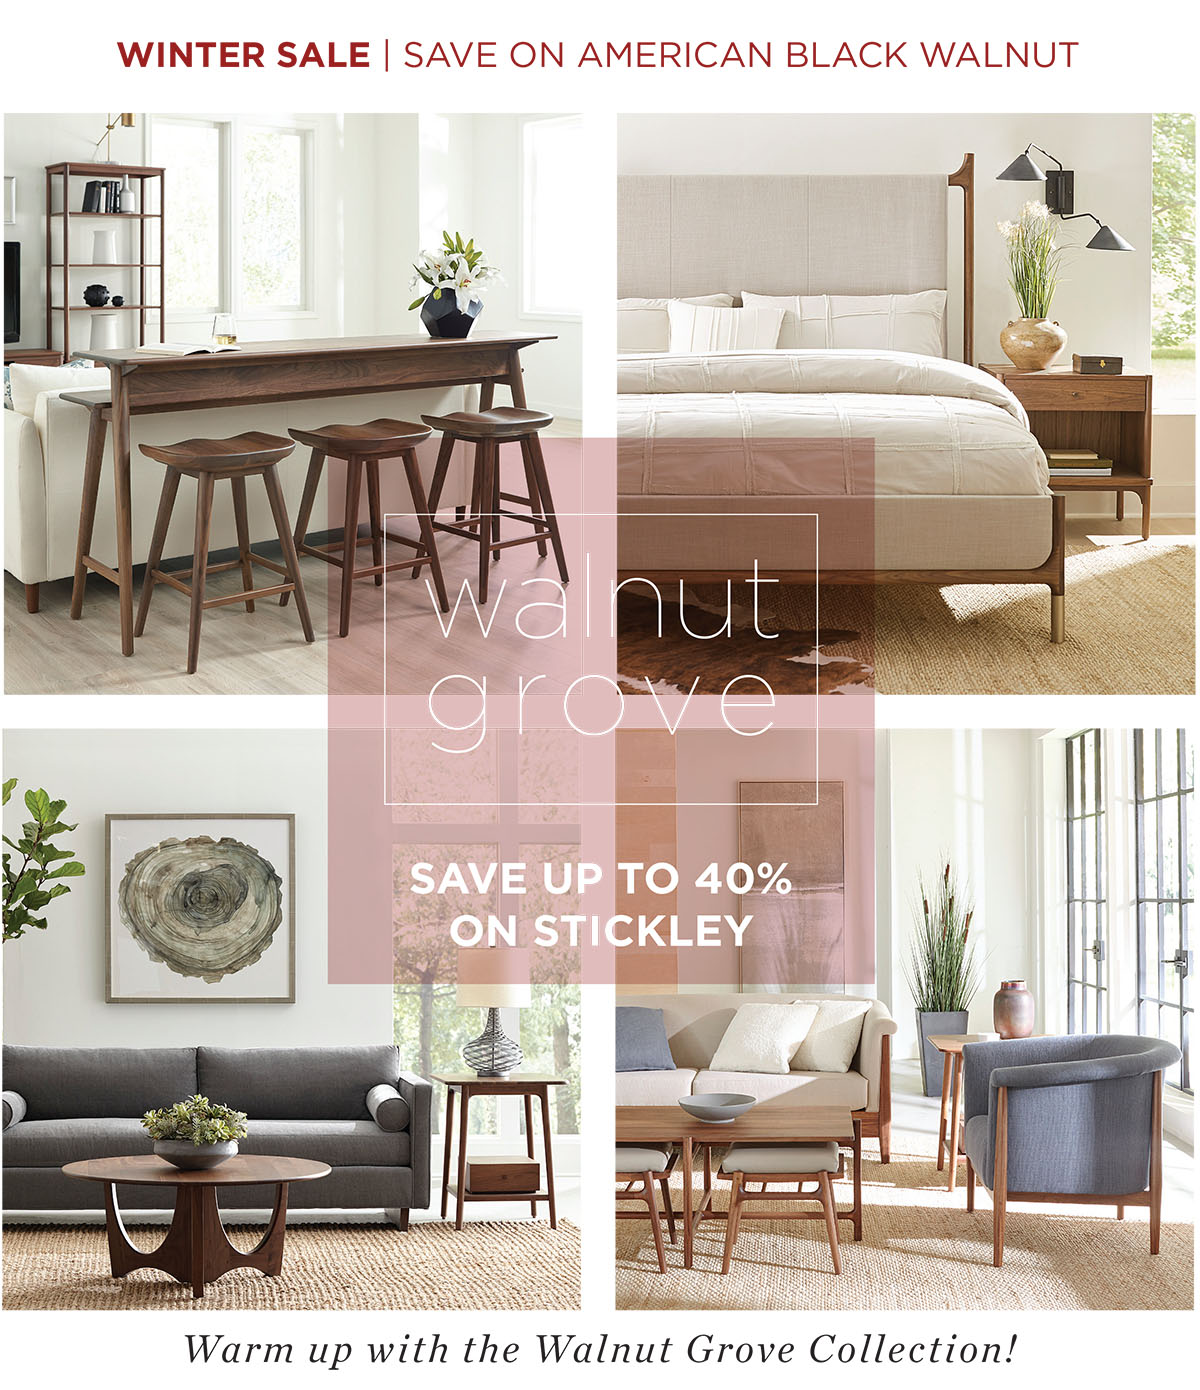 Stickley Winter Sale - 40% Off Walnut Grove Collection